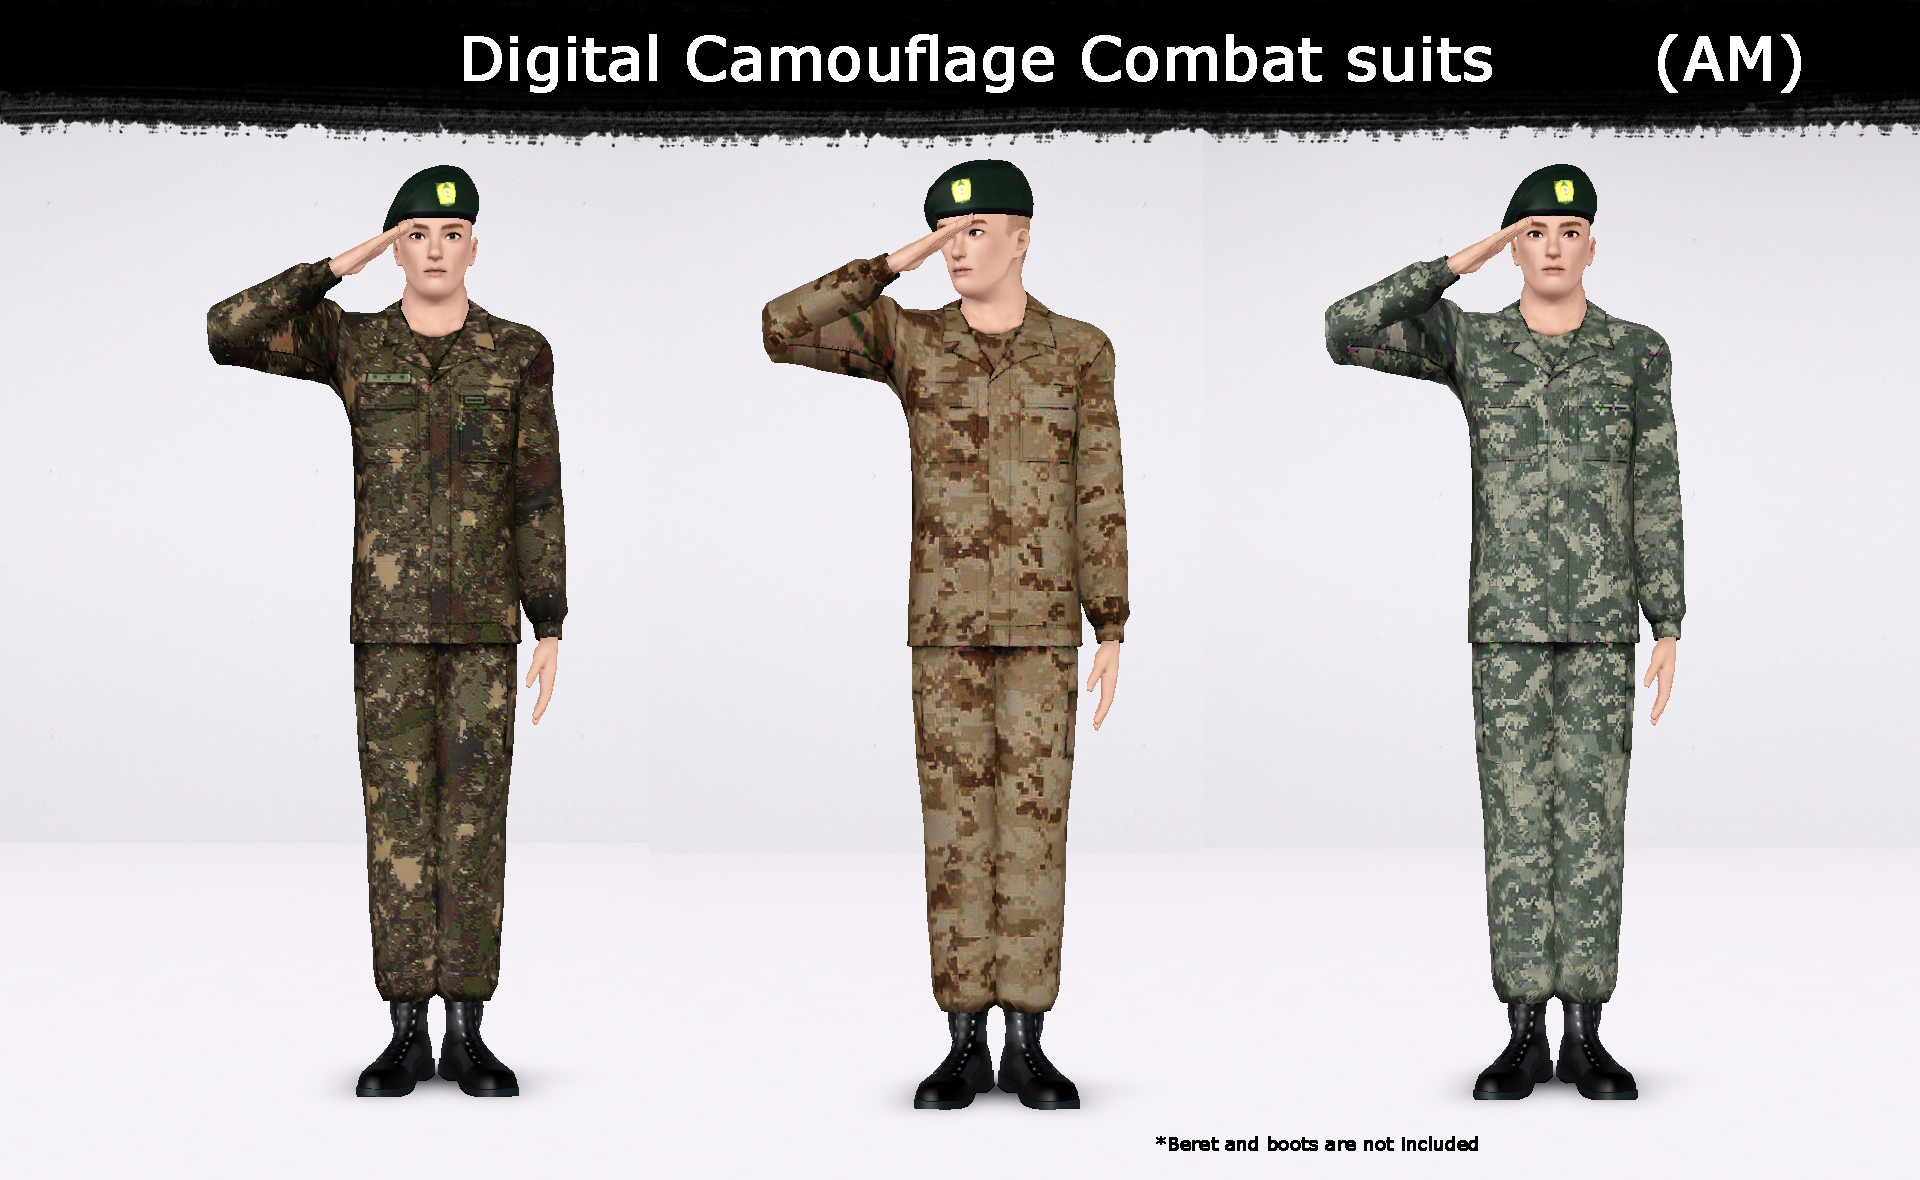 Digital Camouflage Combat Suits, Hat and Pattern by HL7402